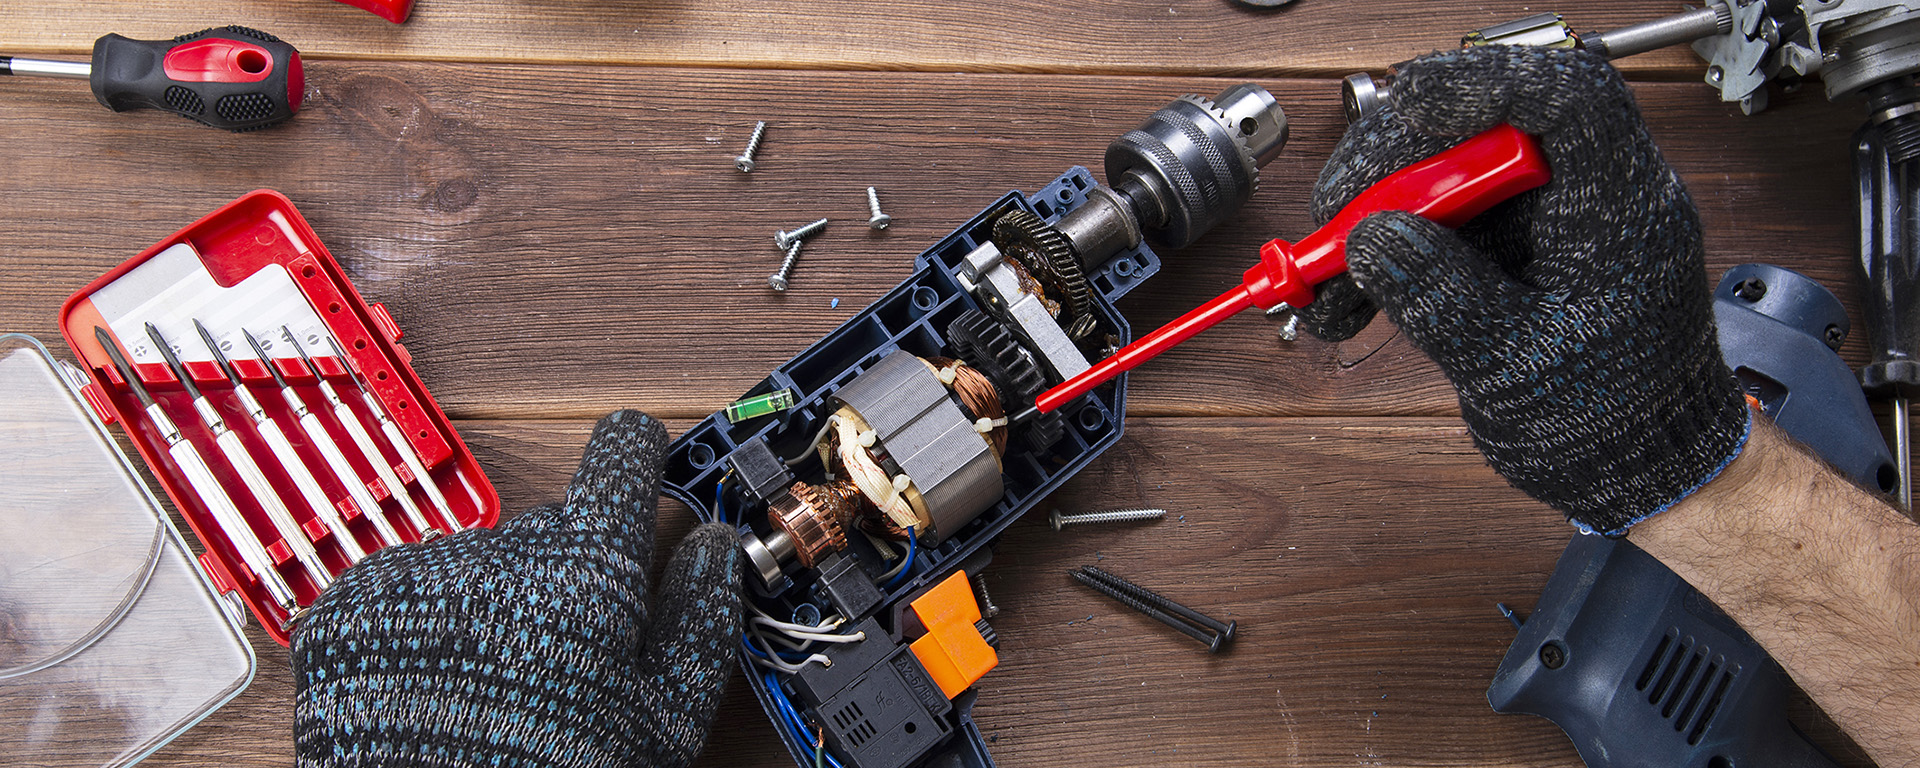 A electric drill with the cover off being repaired